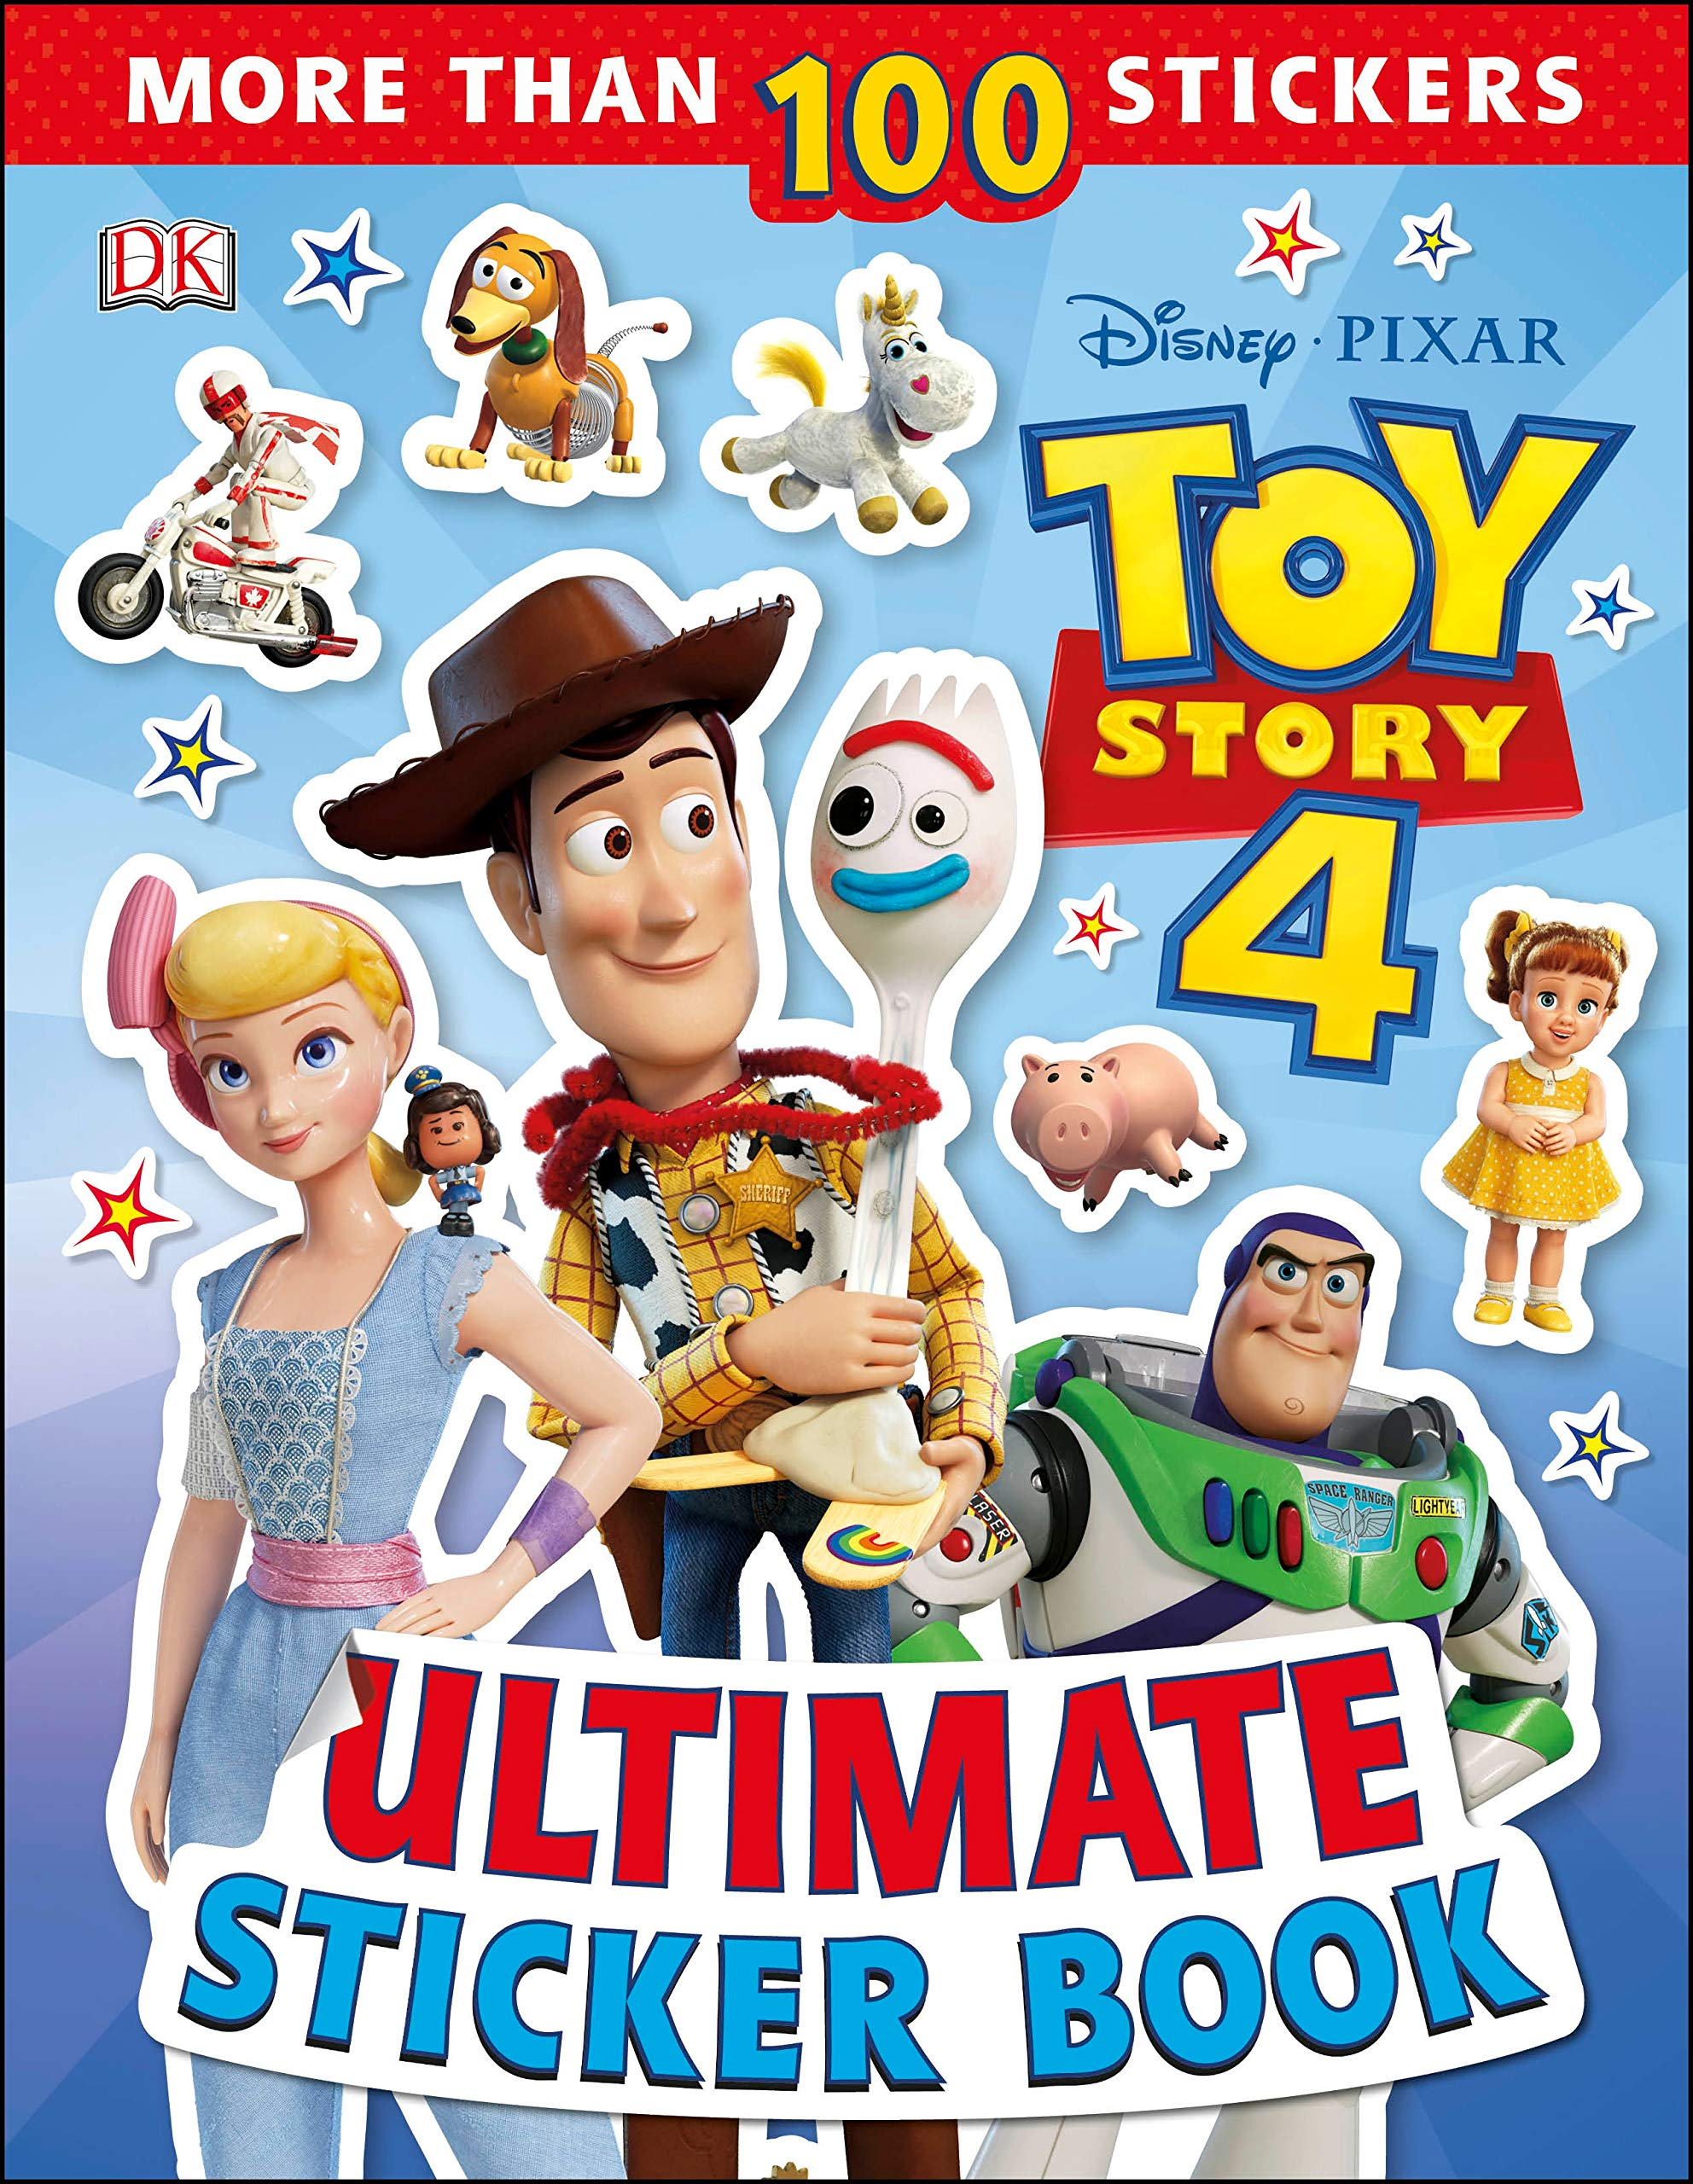 Ultimate Sticker Book Disney Pixar Toy Story 4 Amazon Es